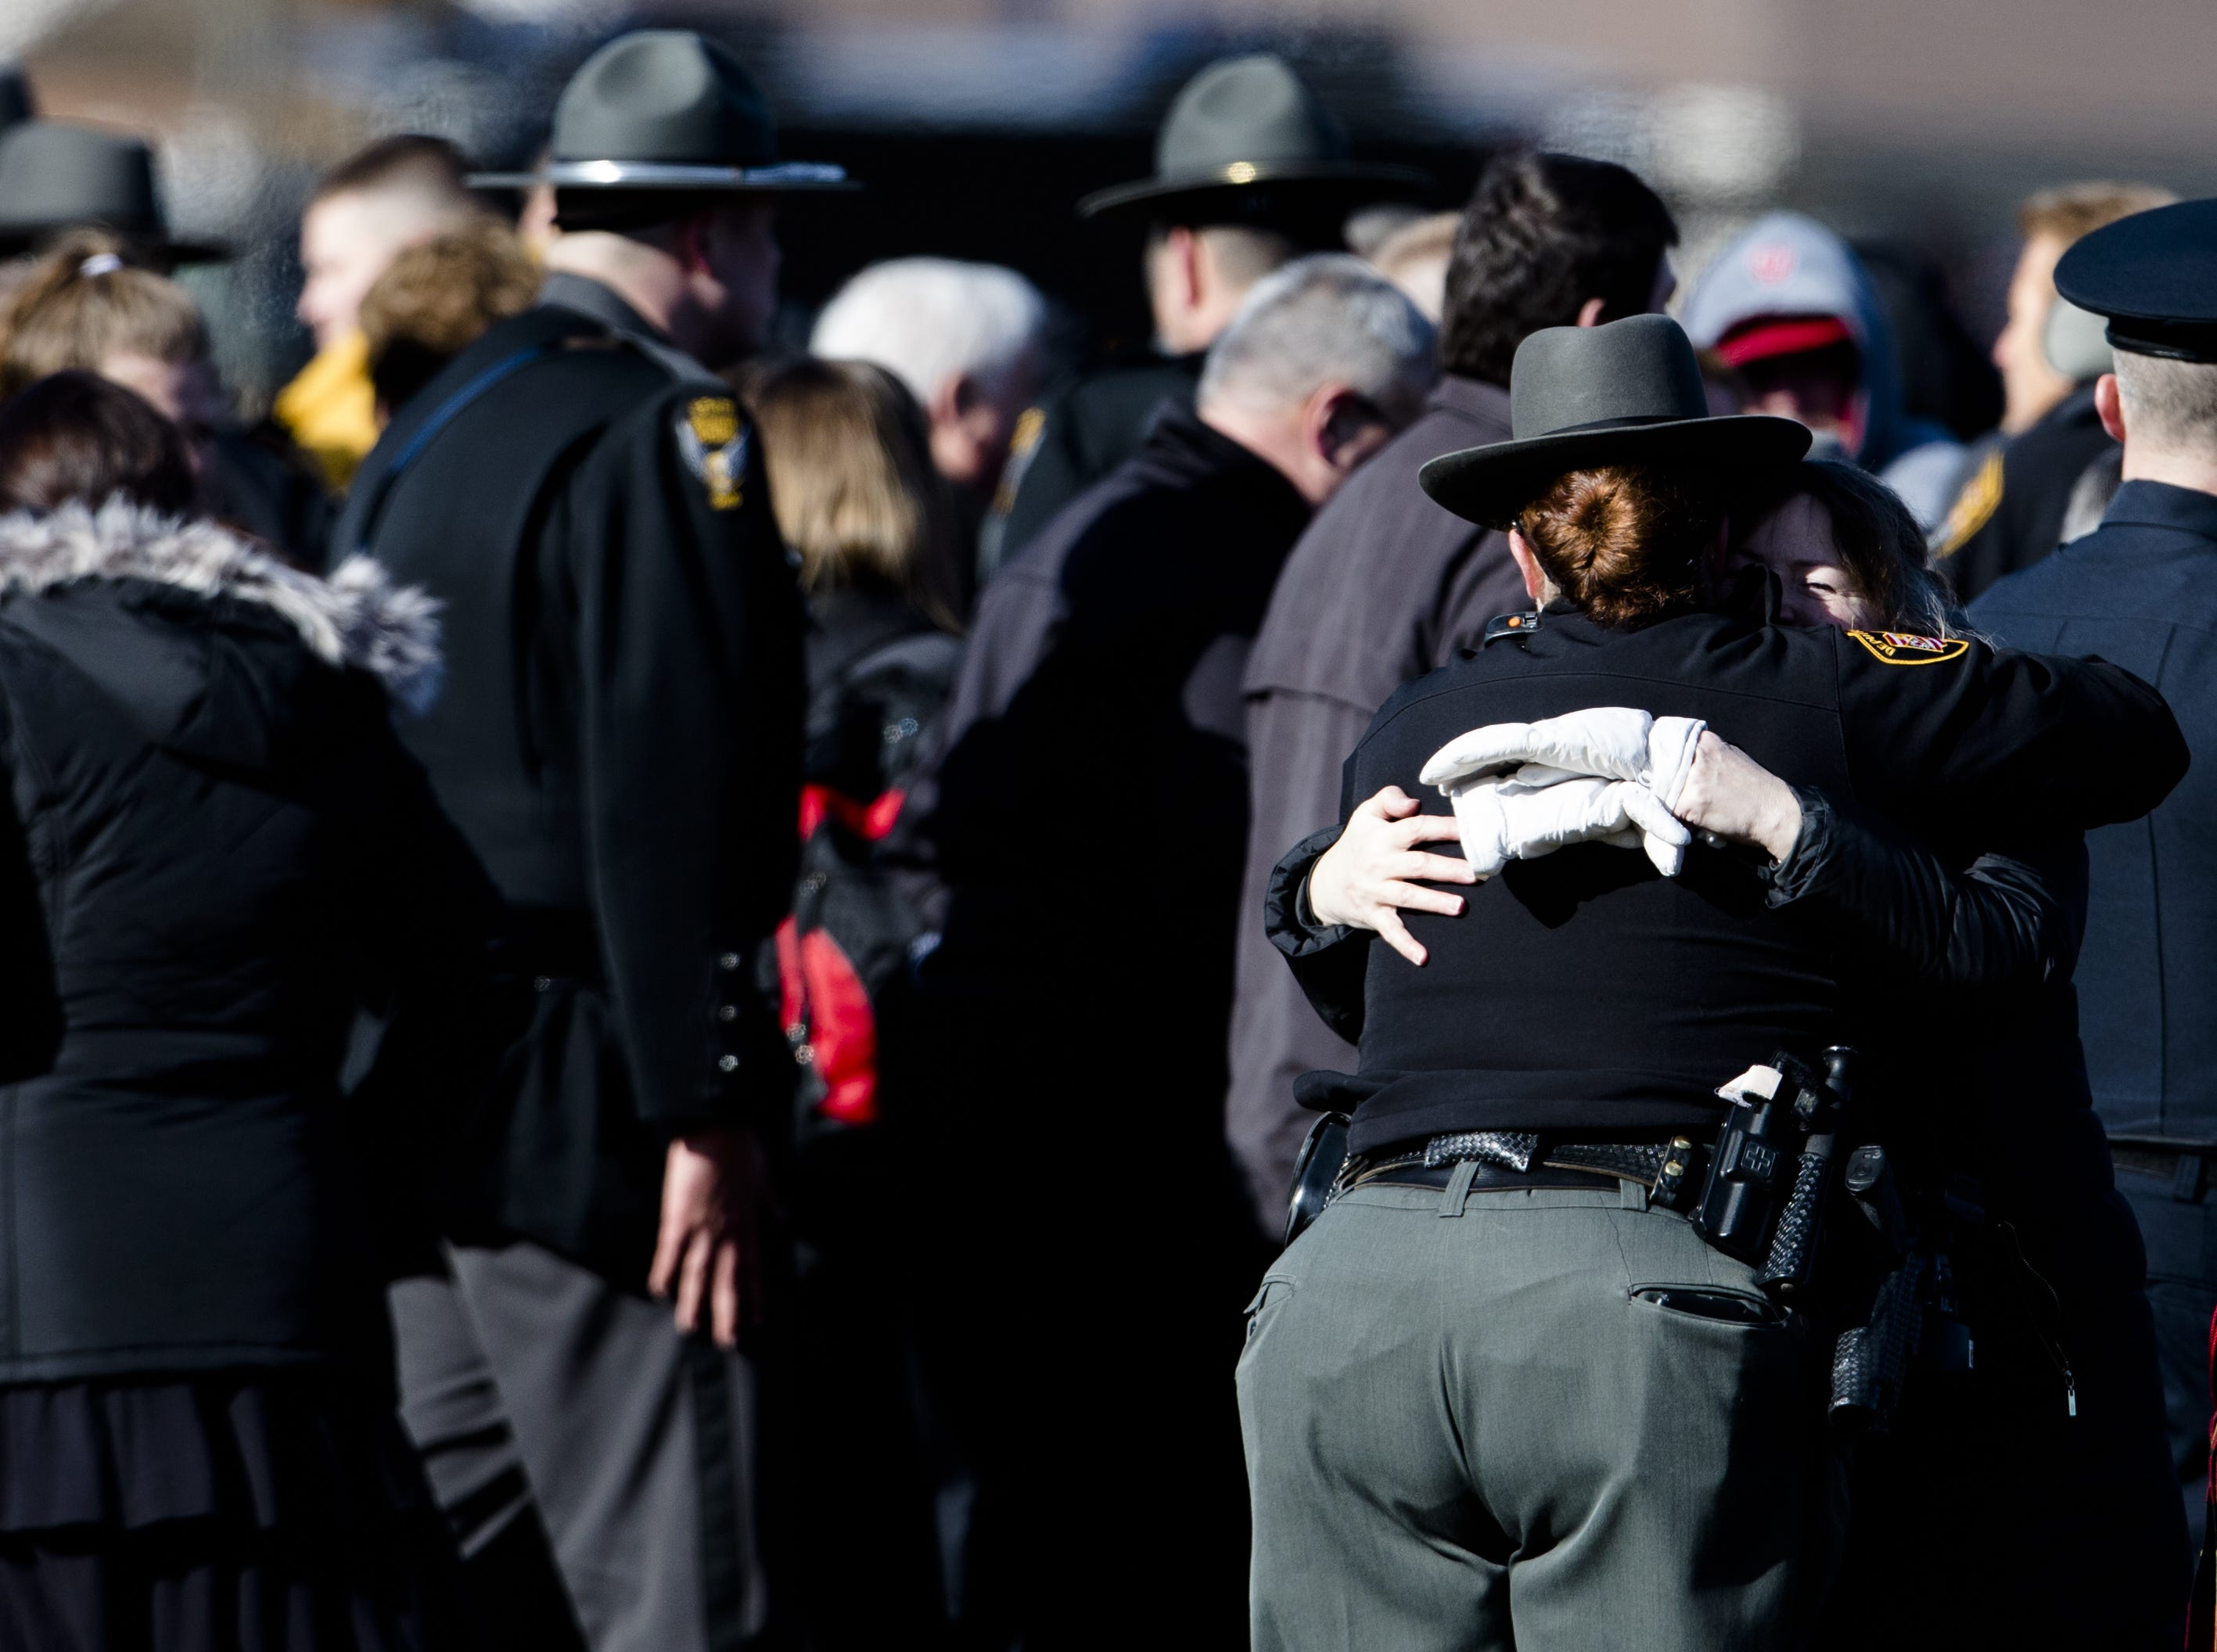 People embrace after the burial service of Detective Bill Brewer, a 20-year veteran of the Clermont County Sheriff's Office, on Friday, Feb. 8, 2019, at Pierce Township Cemetery in Cincinnati. Brewer, 42, of Pierce Township, died in the line of duty. He was shot Feb. 2 during a standoff. Deputy Brewer is survived by a wife and 5-year-old son.